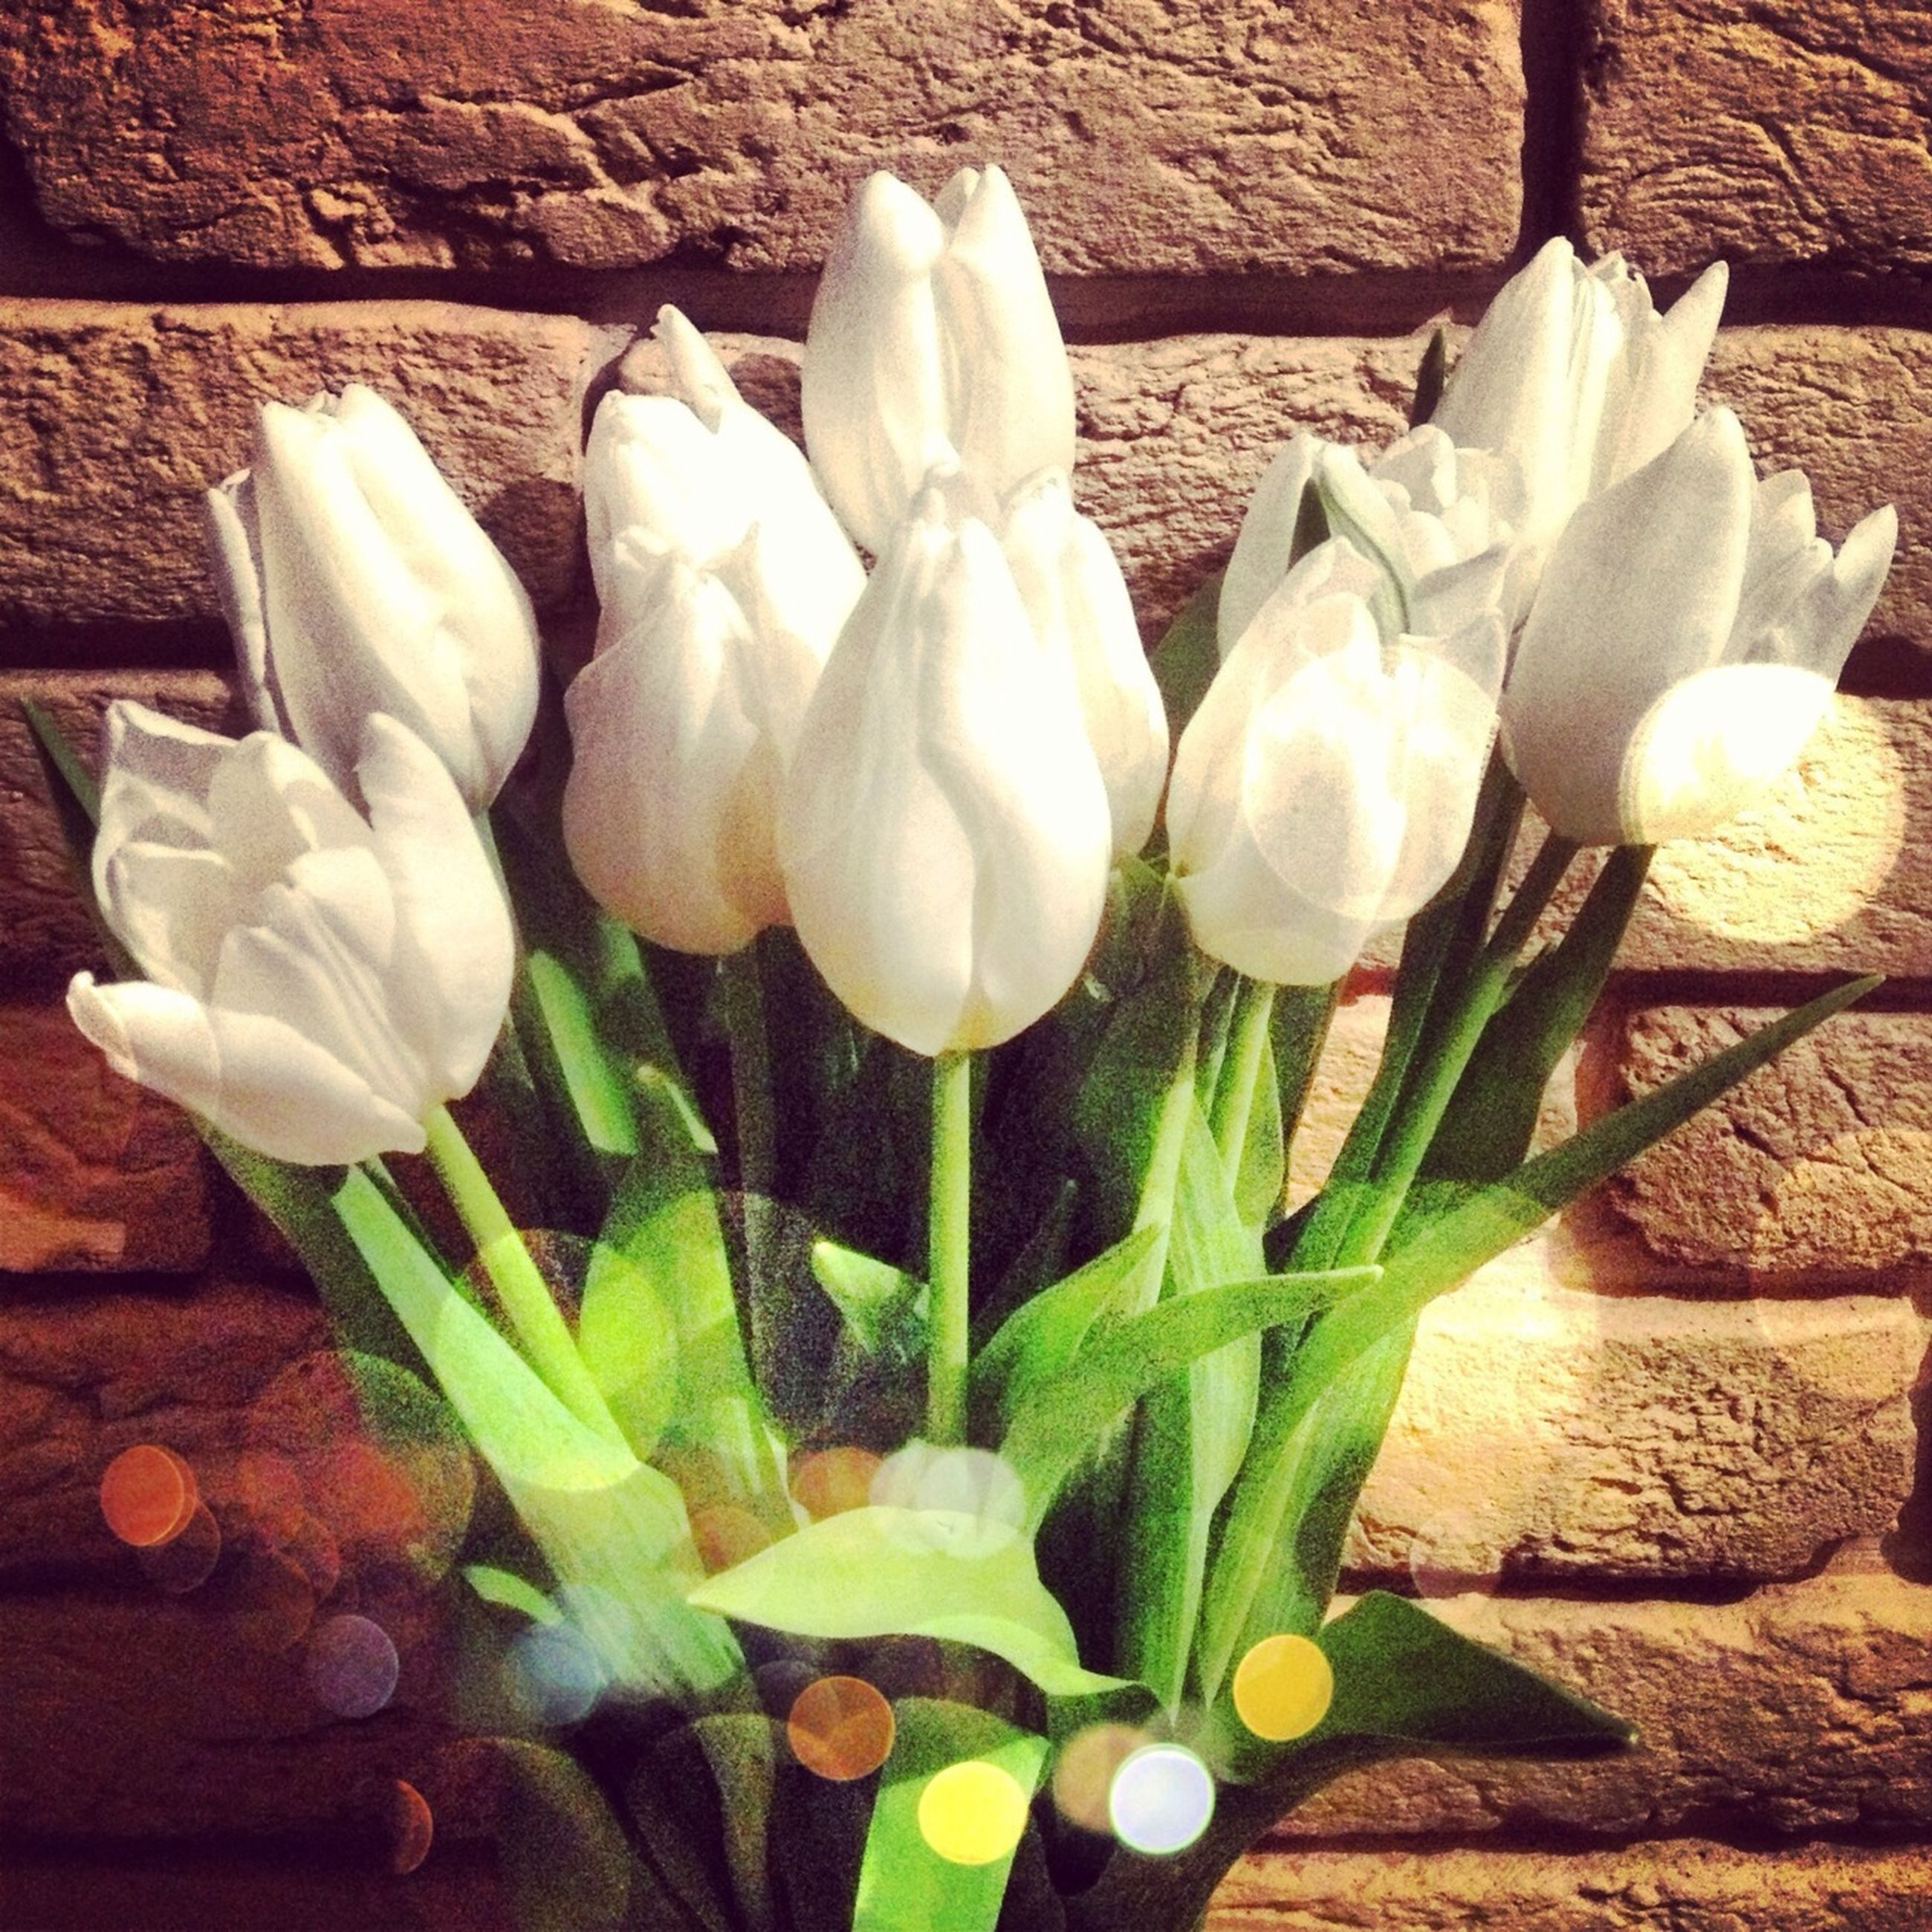 flower, freshness, growth, fragility, plant, petal, flower head, leaf, nature, white color, beauty in nature, close-up, high angle view, field, stem, tulip, botany, day, blooming, bud